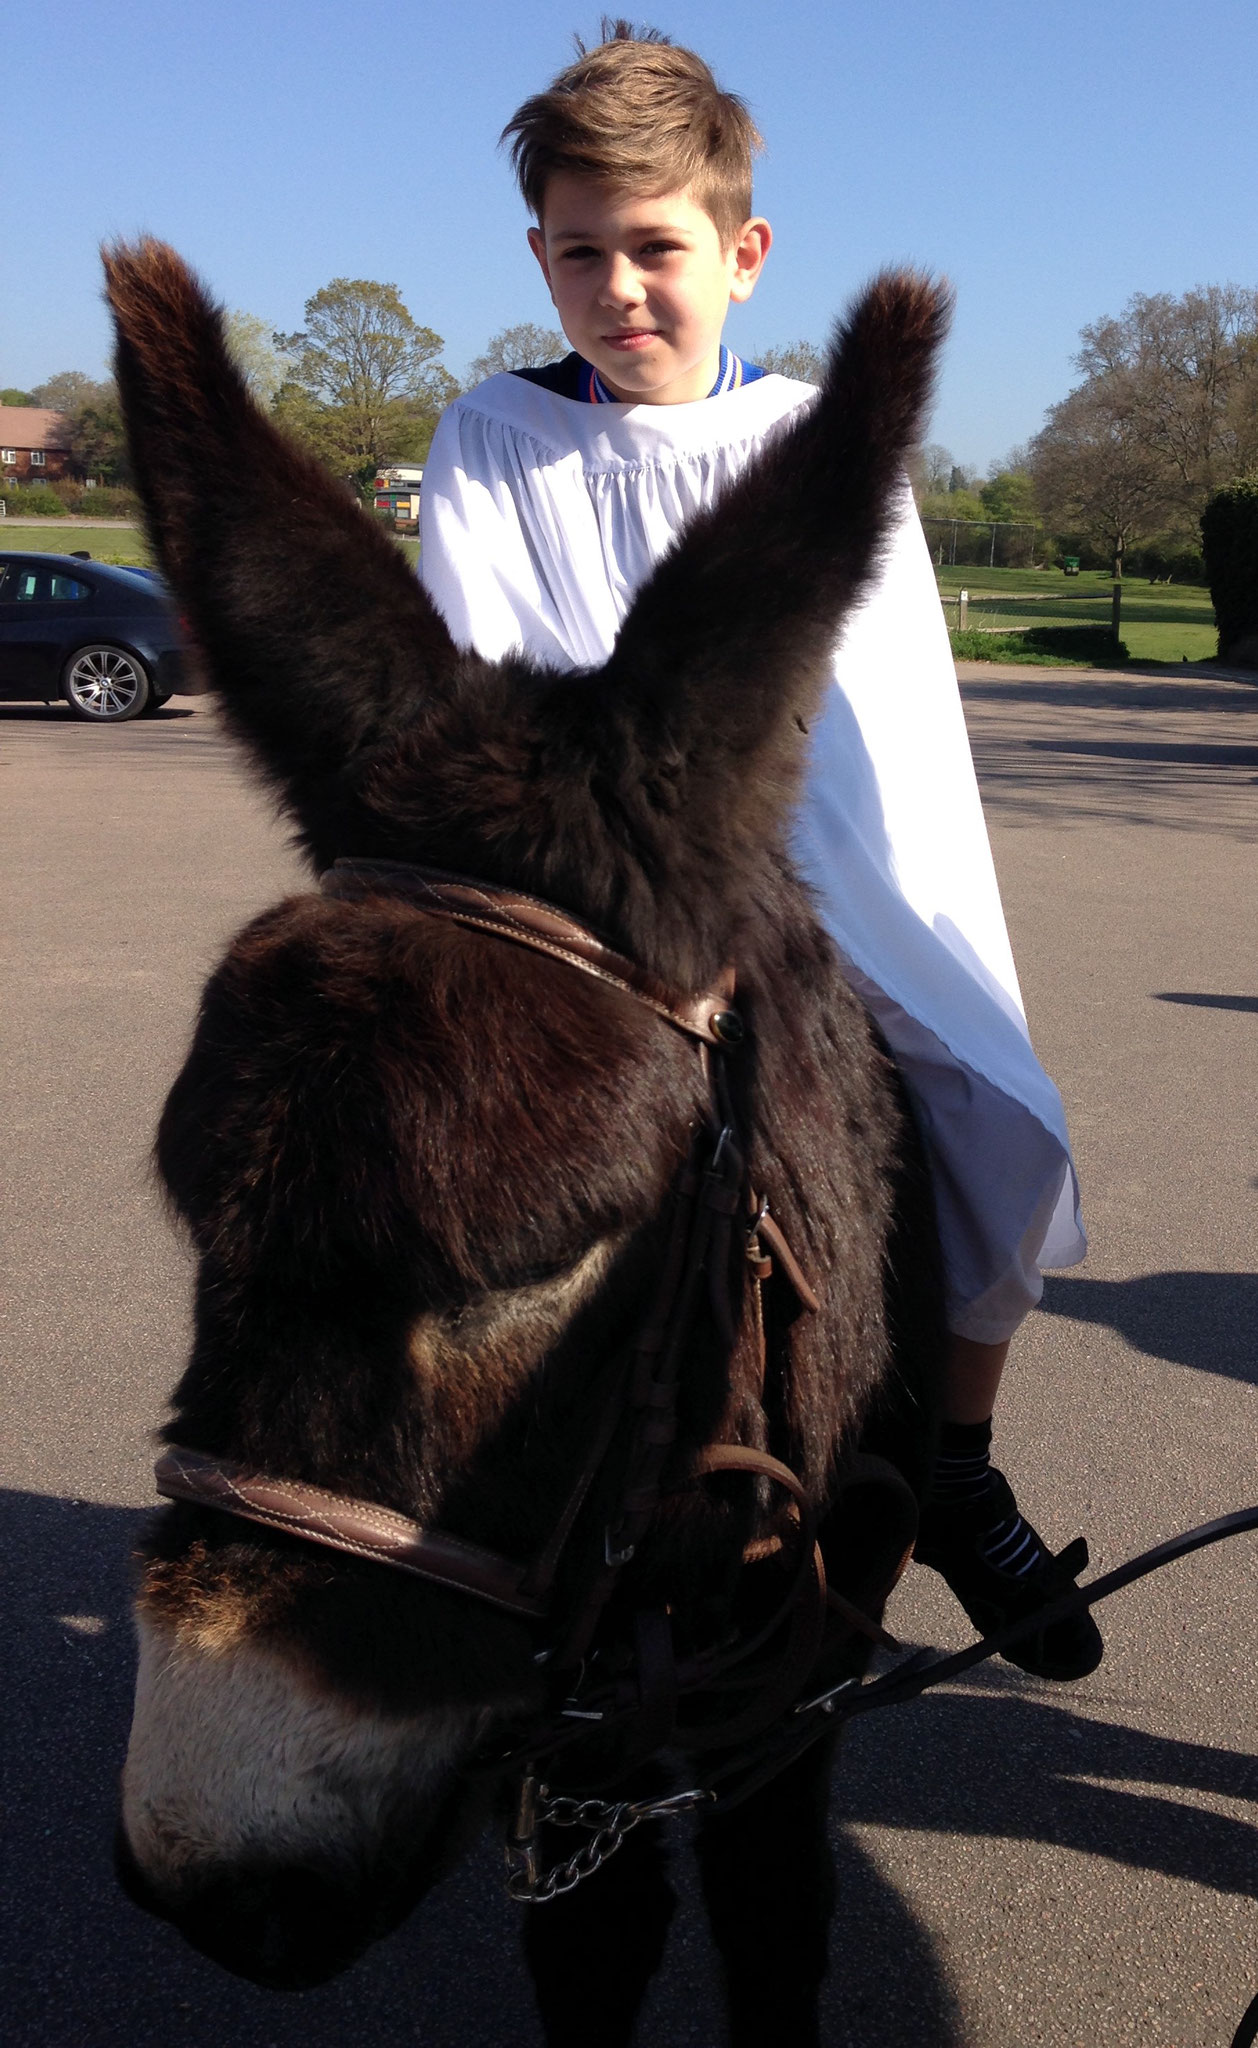 'Jesus' on the donkey